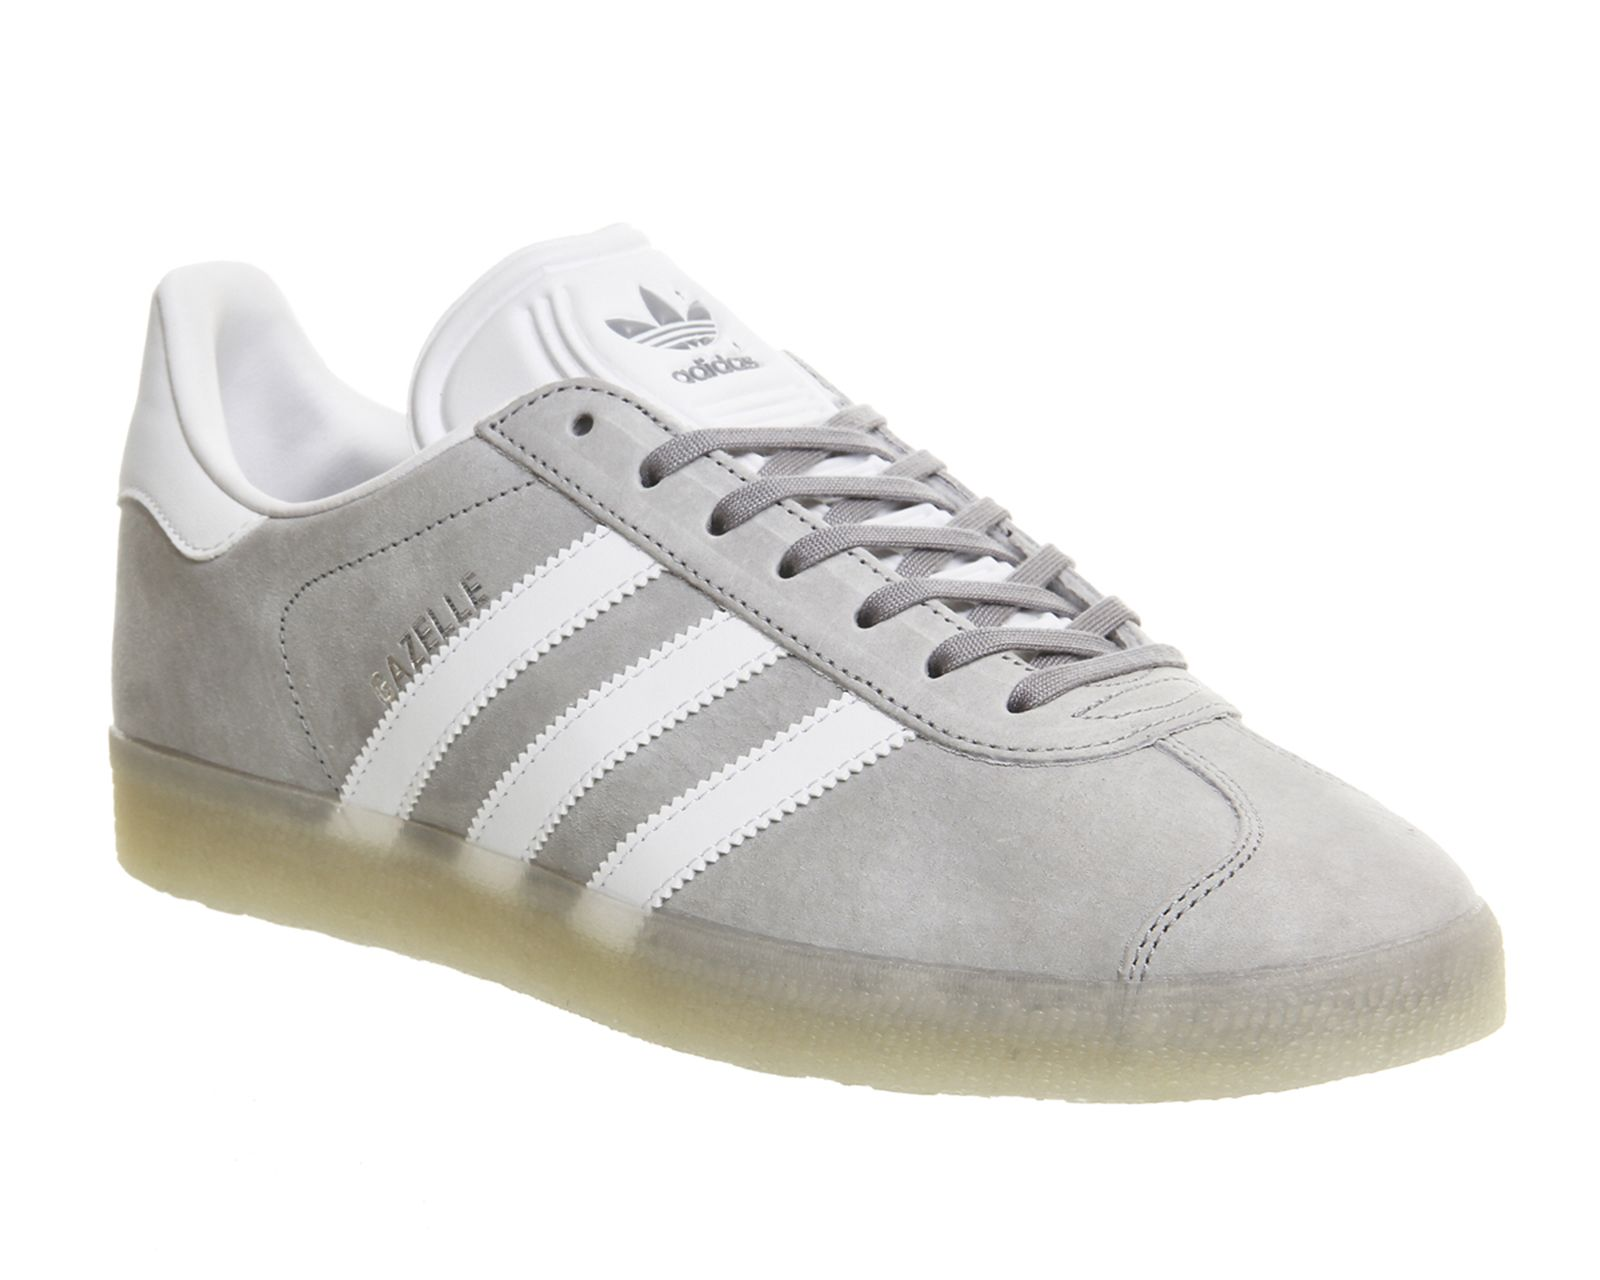 fe22fa0ba7f7 ... buy mid grey white ice adidas gazelle from office.co.uk.